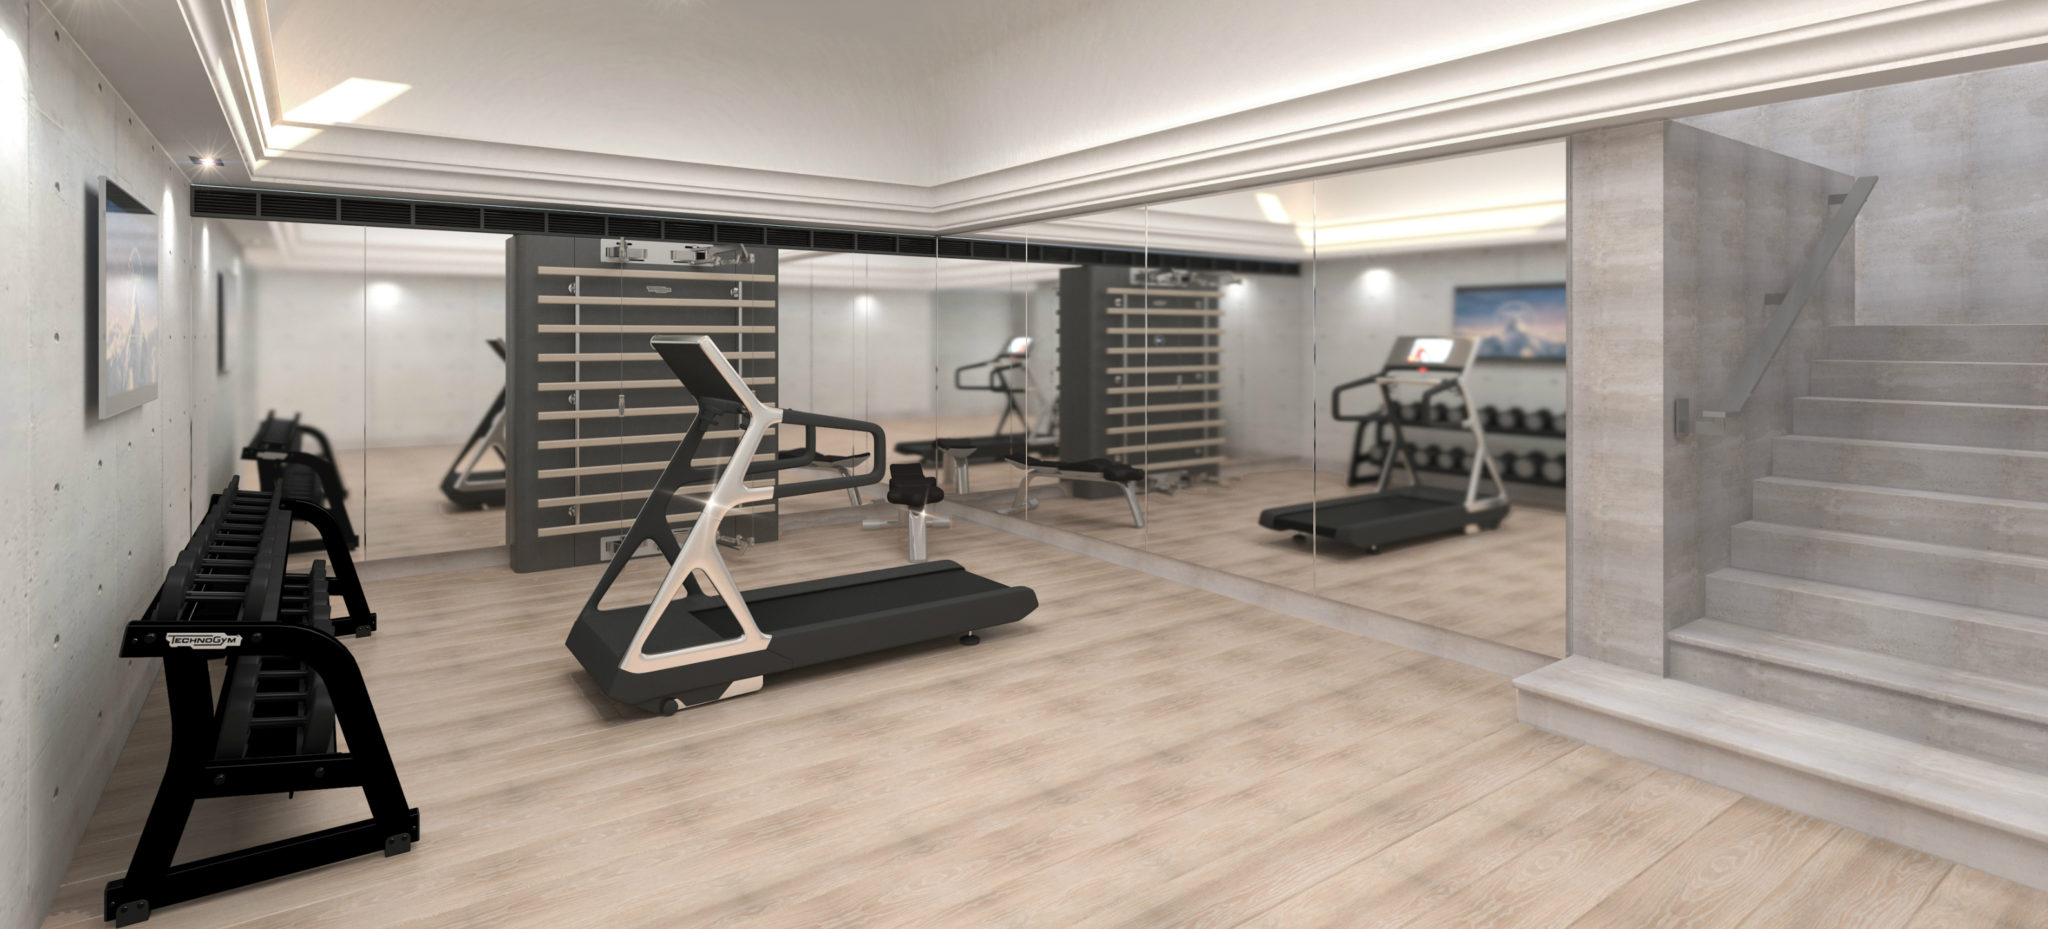 Gym design home luxury equipment by